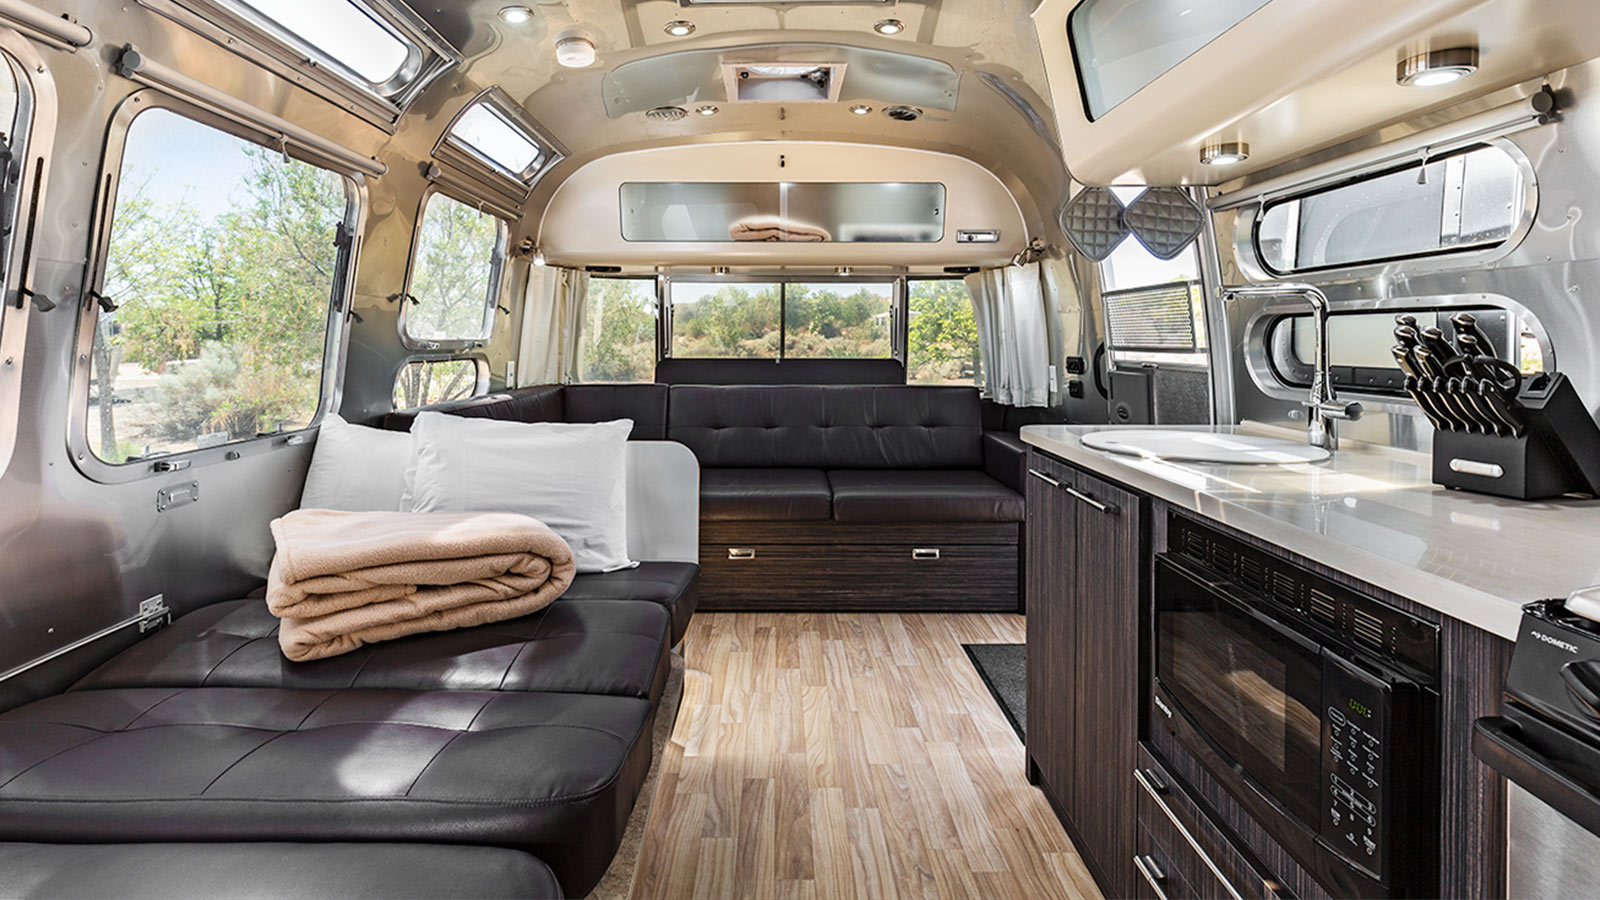 Airstream Interior - Convertible Bed